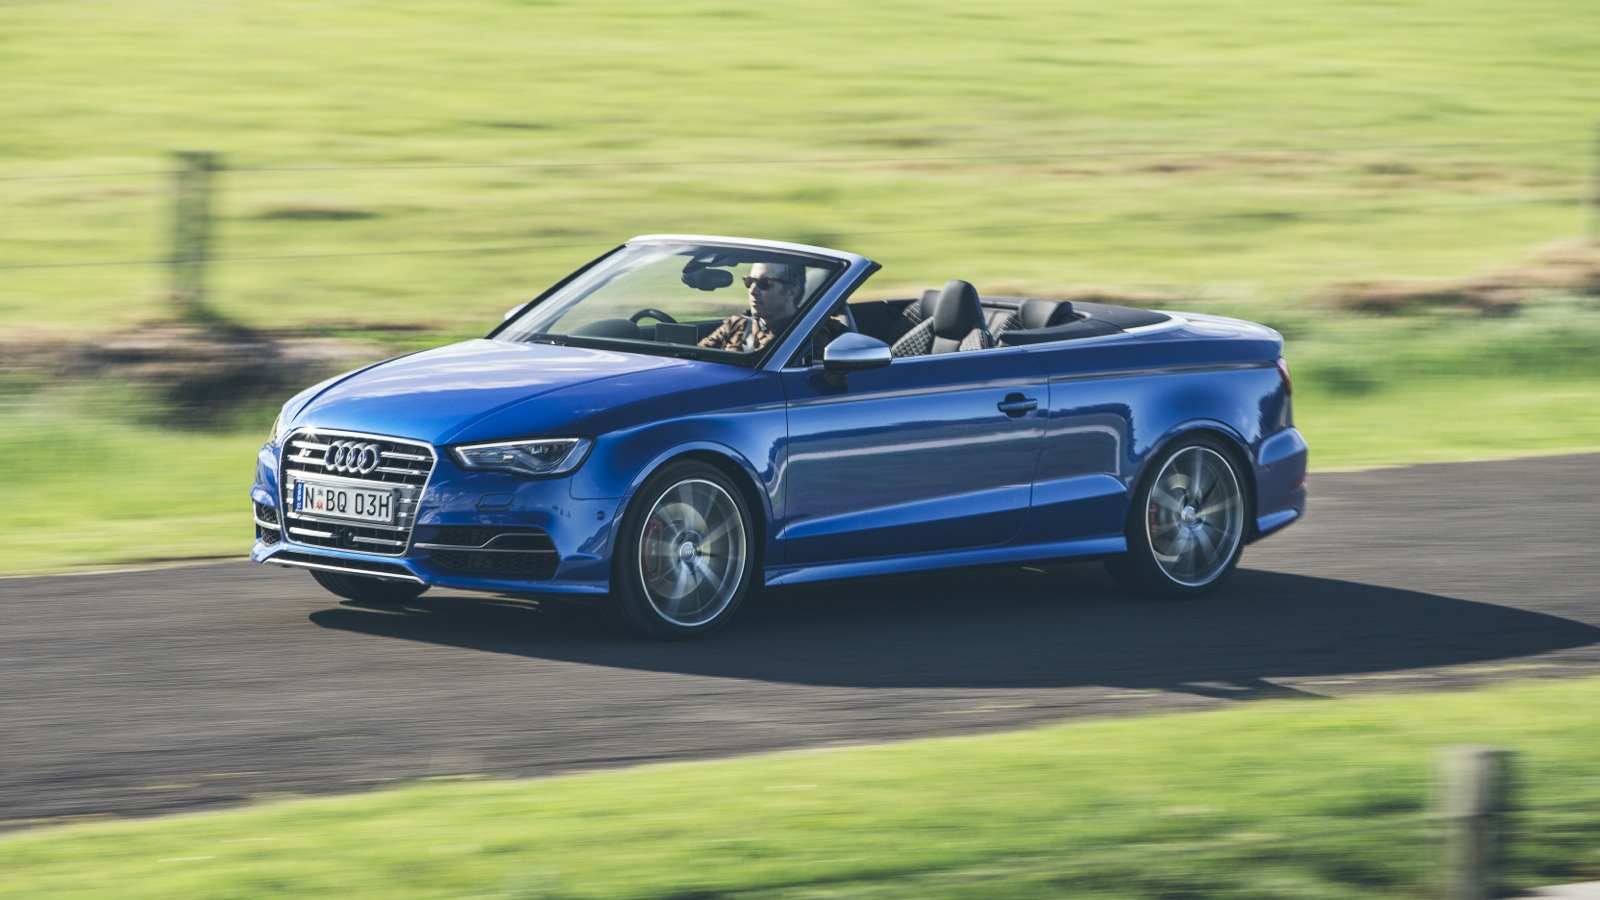 audi s3 cabriolet pricing and specifications photos caradvice. Black Bedroom Furniture Sets. Home Design Ideas